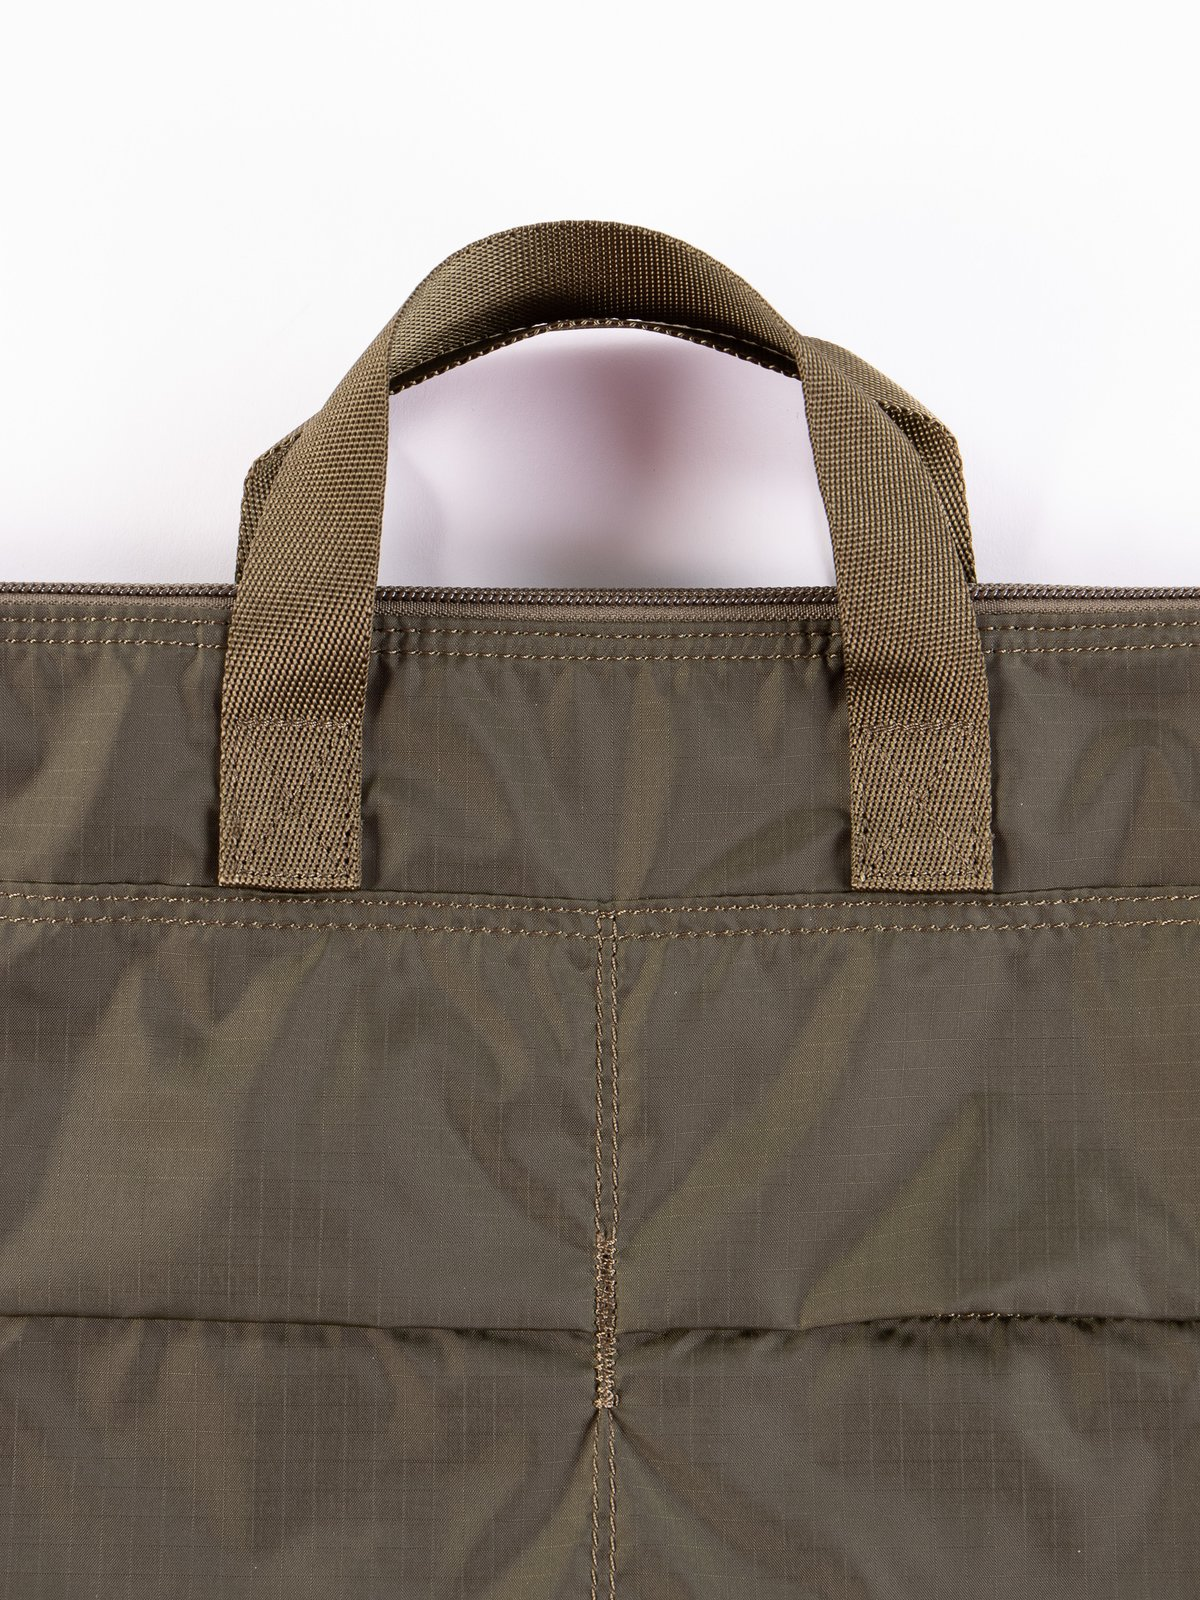 Olive Drab Flex 2Way Helmet Bag - Image 3